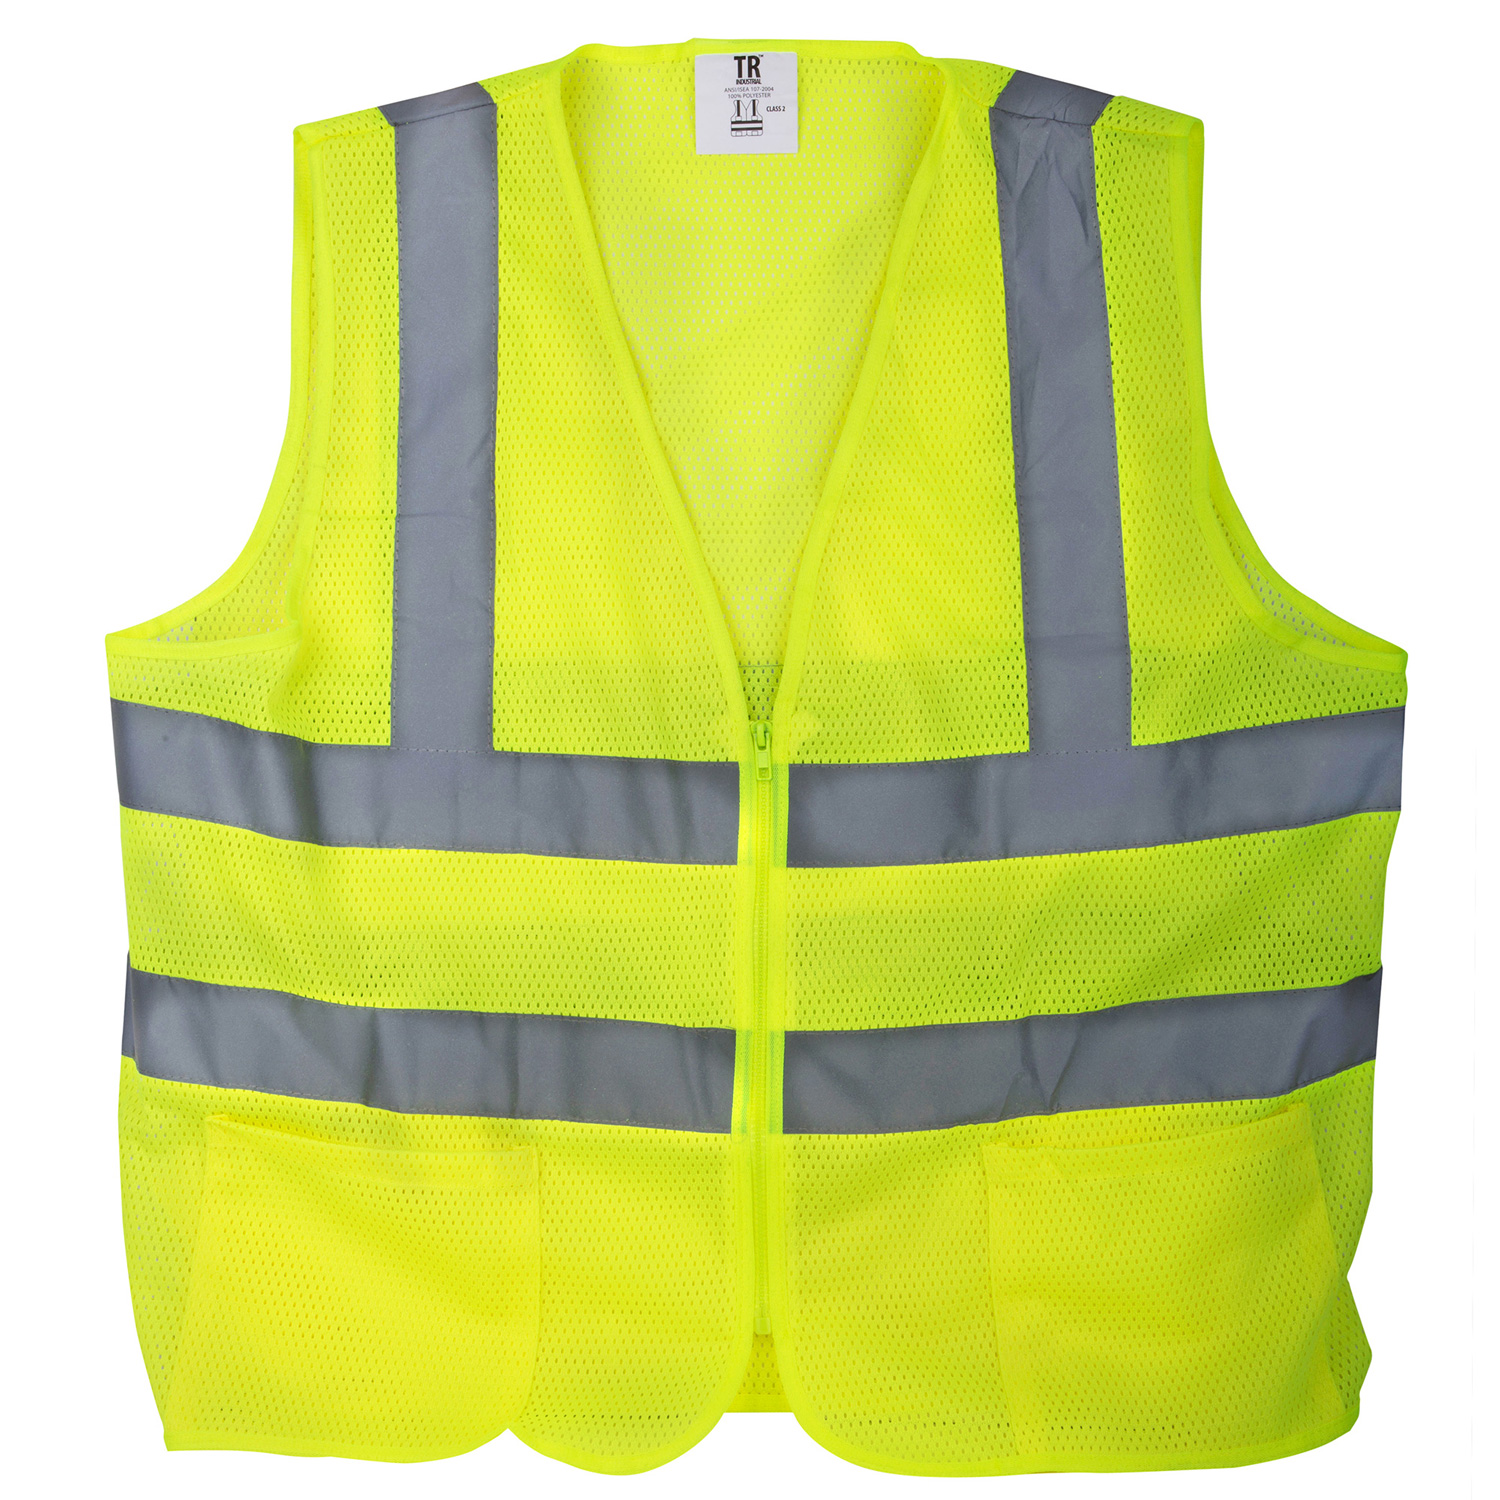 TR Industrial Neon Yellow Front Zipper Mesh Safety Vest- Size Large